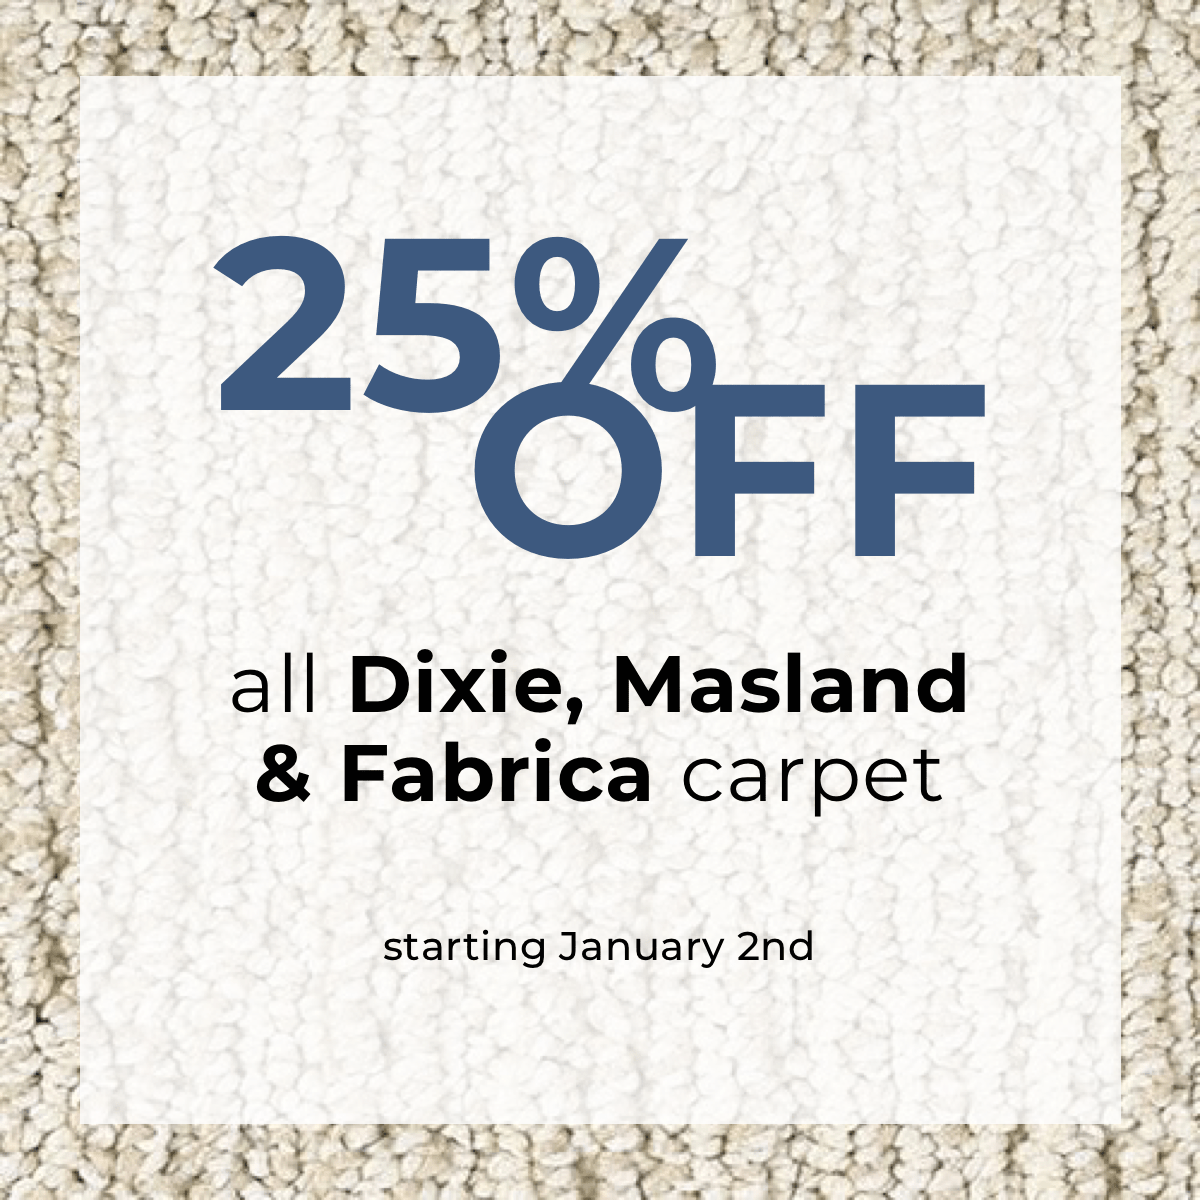 25% Off all Dixie, Masland & Fabrica carpet starting January 2nd